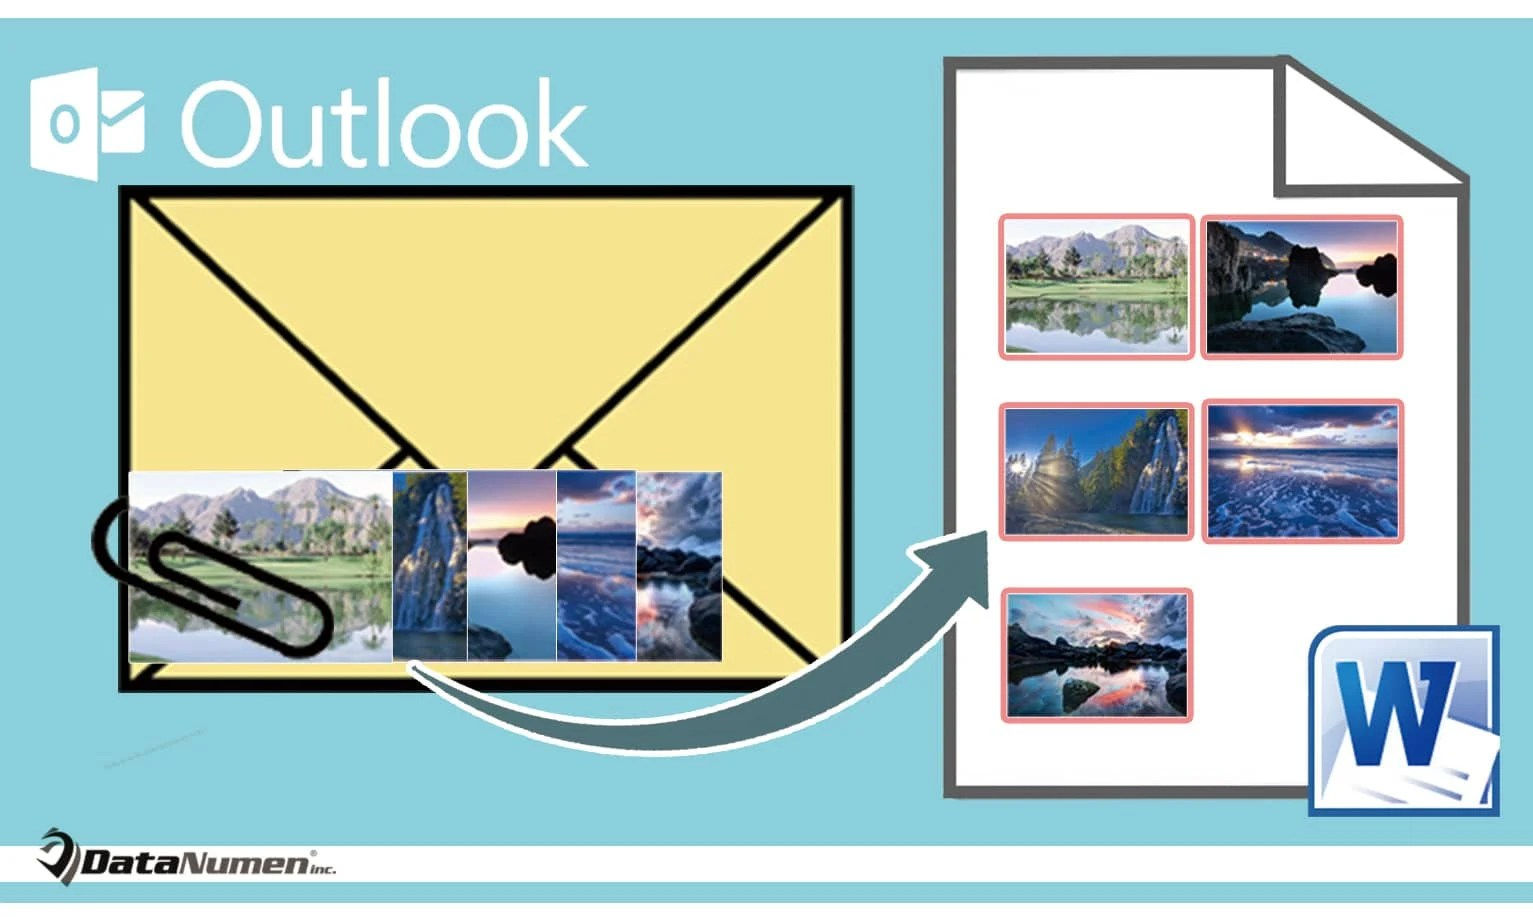 Quickly Export All Image Attachments of an Outlook Email to a Word Document